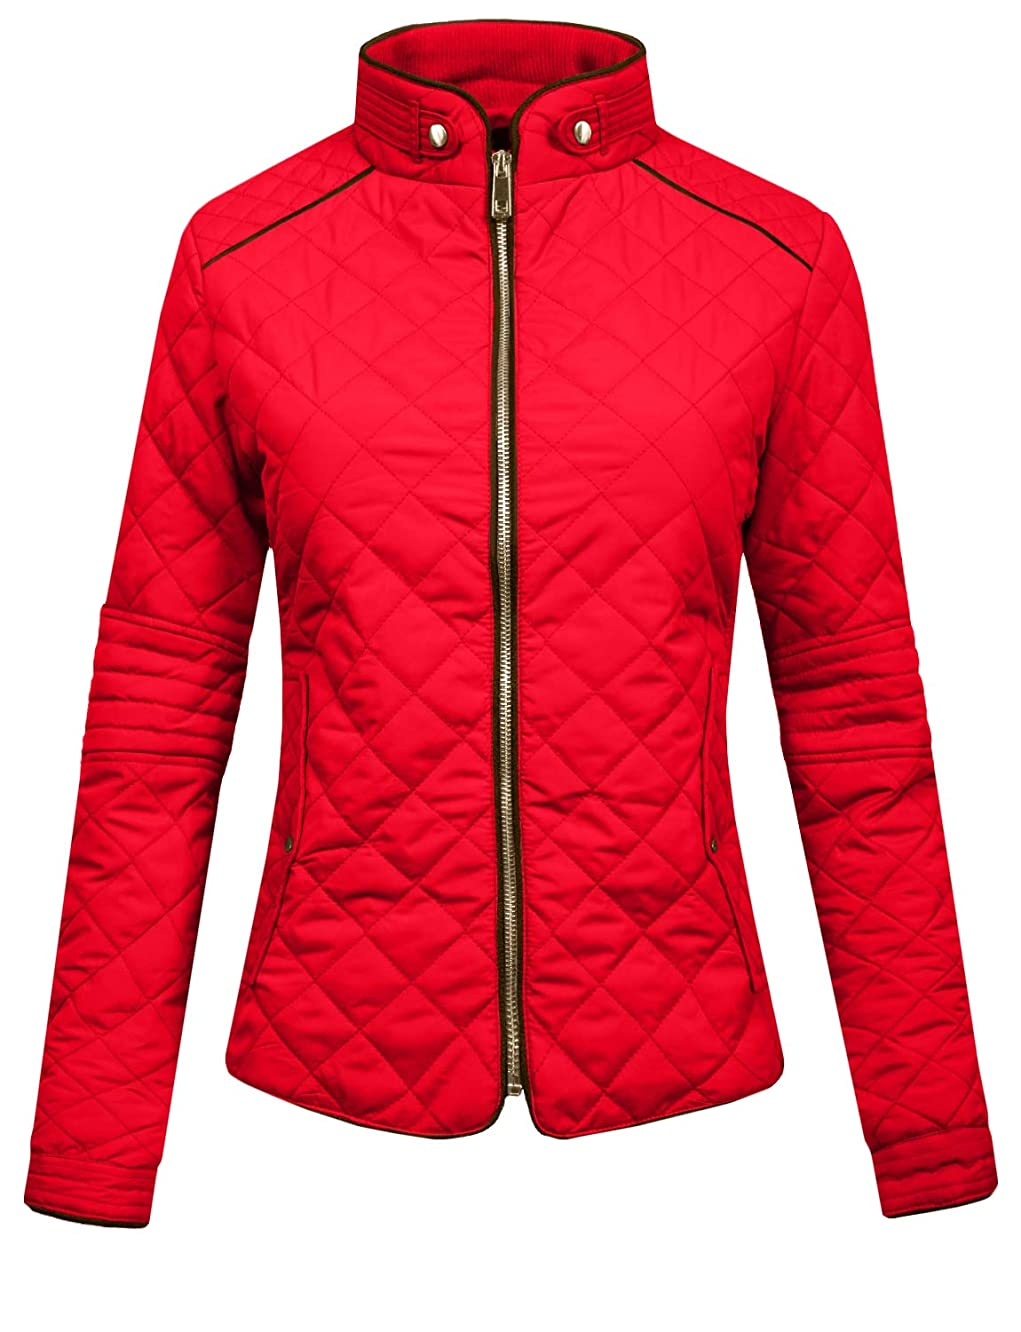 J.LOVNY Womens Lightweight Quilted Warm Zip Jacket/Vest with Pockets S-3XL